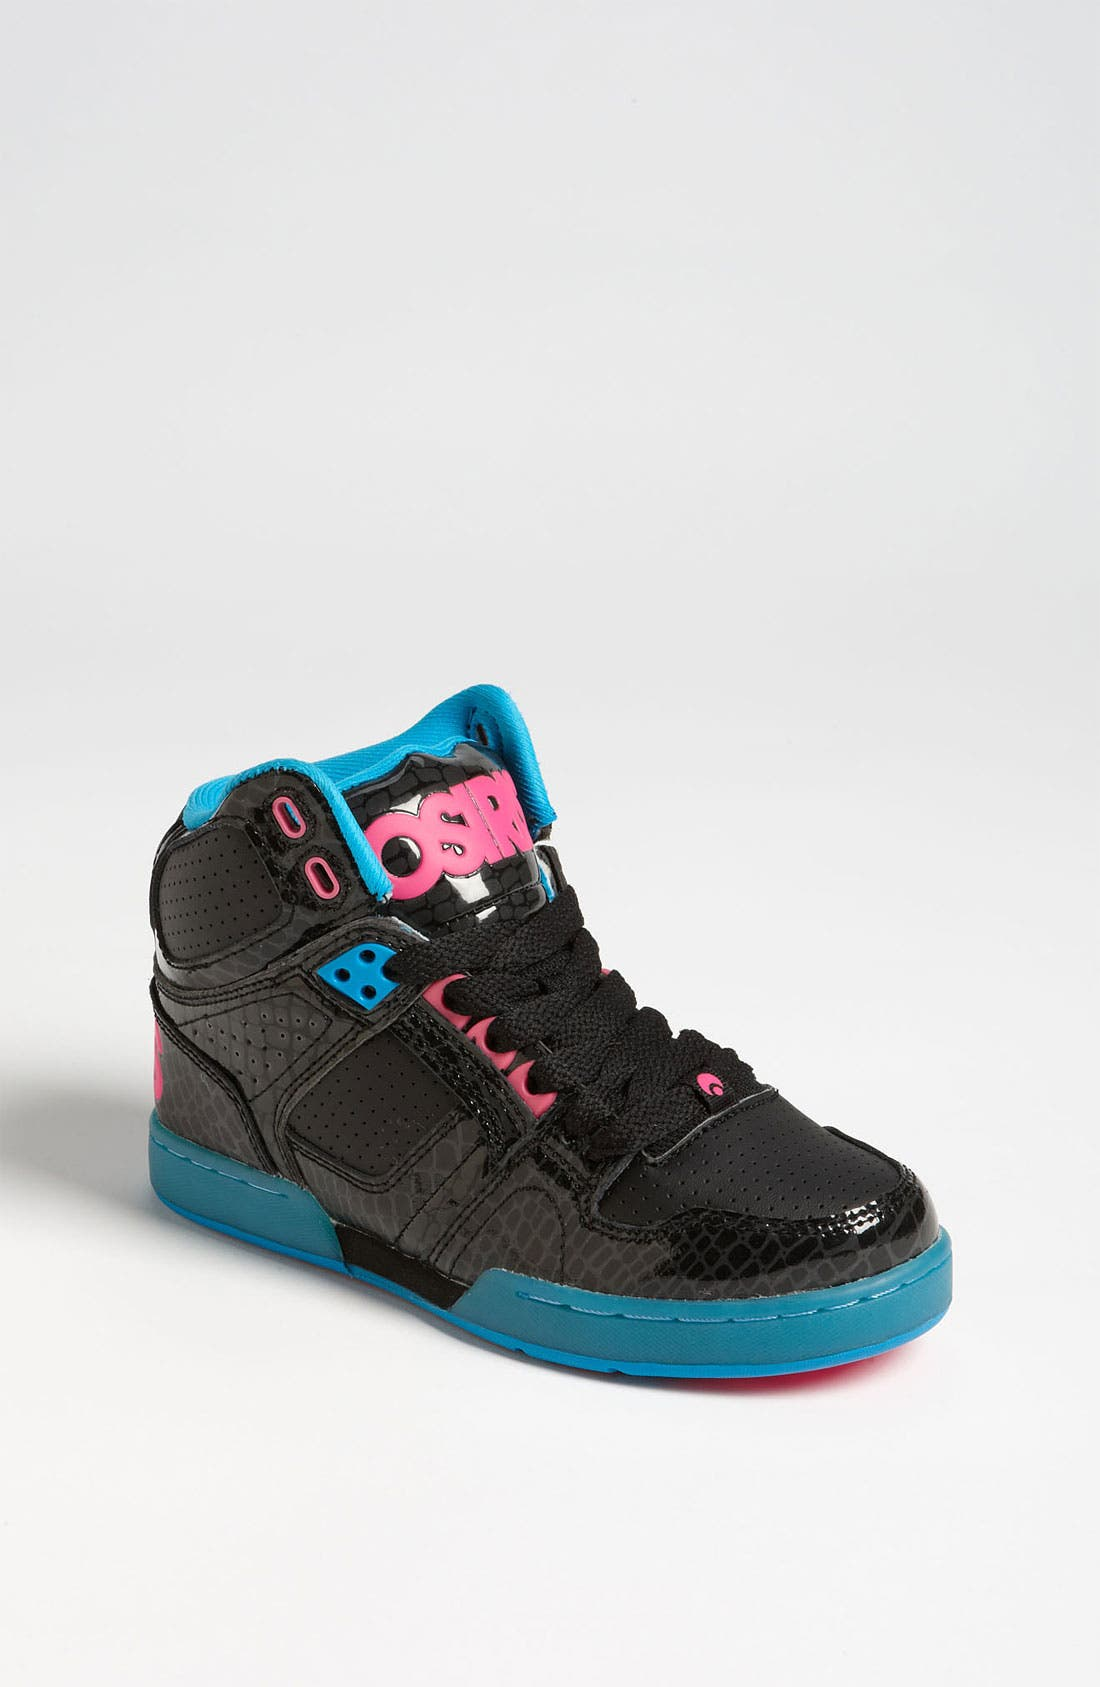 Main Image - Osiris 'NYC 83 Slim' Sneaker (Toddler, Little Kid & Big Kid)